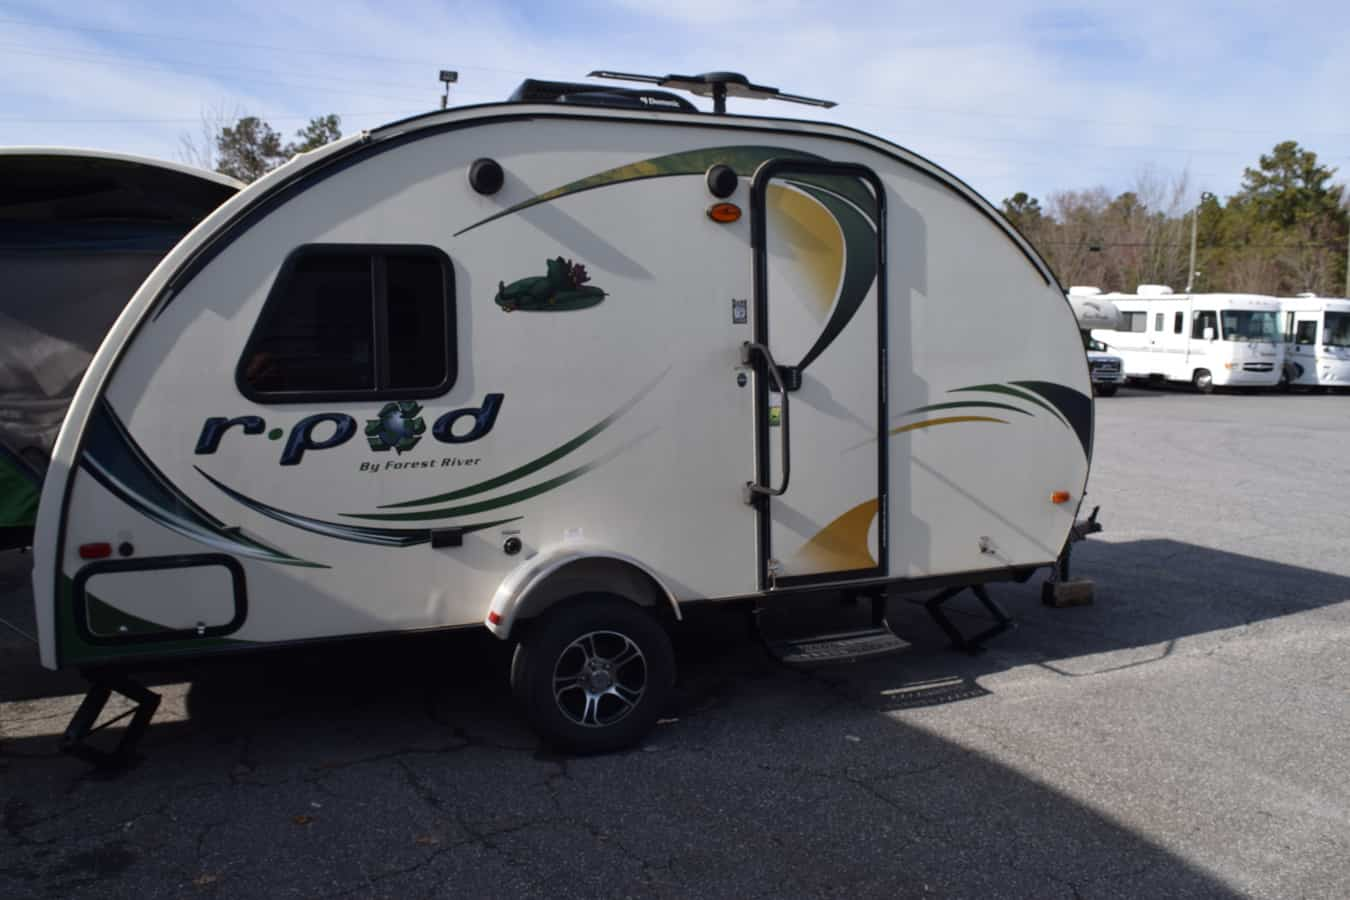 USED 2014 FOREST RIVER RPOD 176T - Three Way Campers